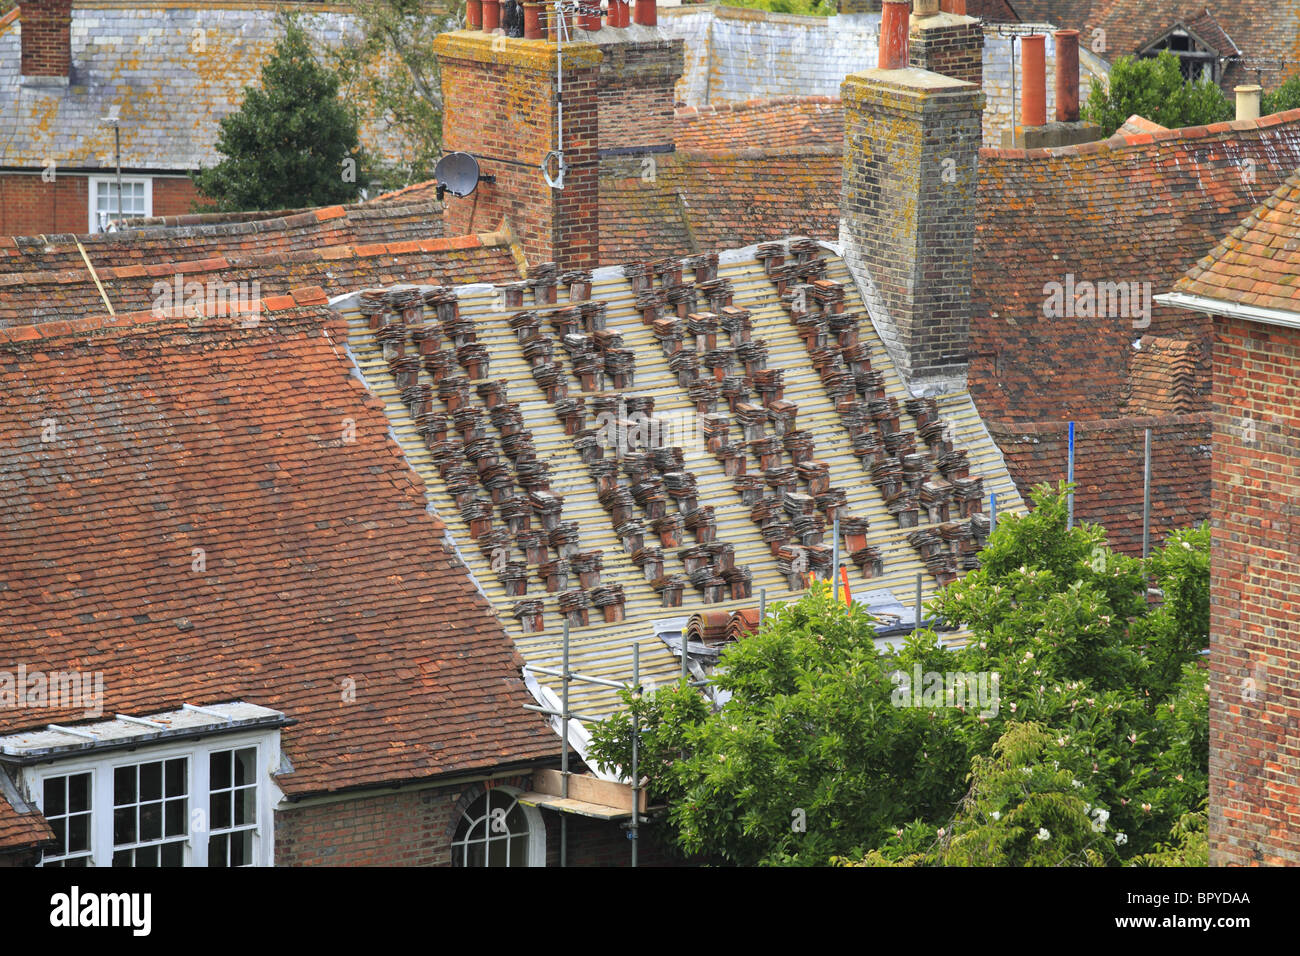 An old cottage having its roof replaced in Rye, East Sussex, England. - Stock Image